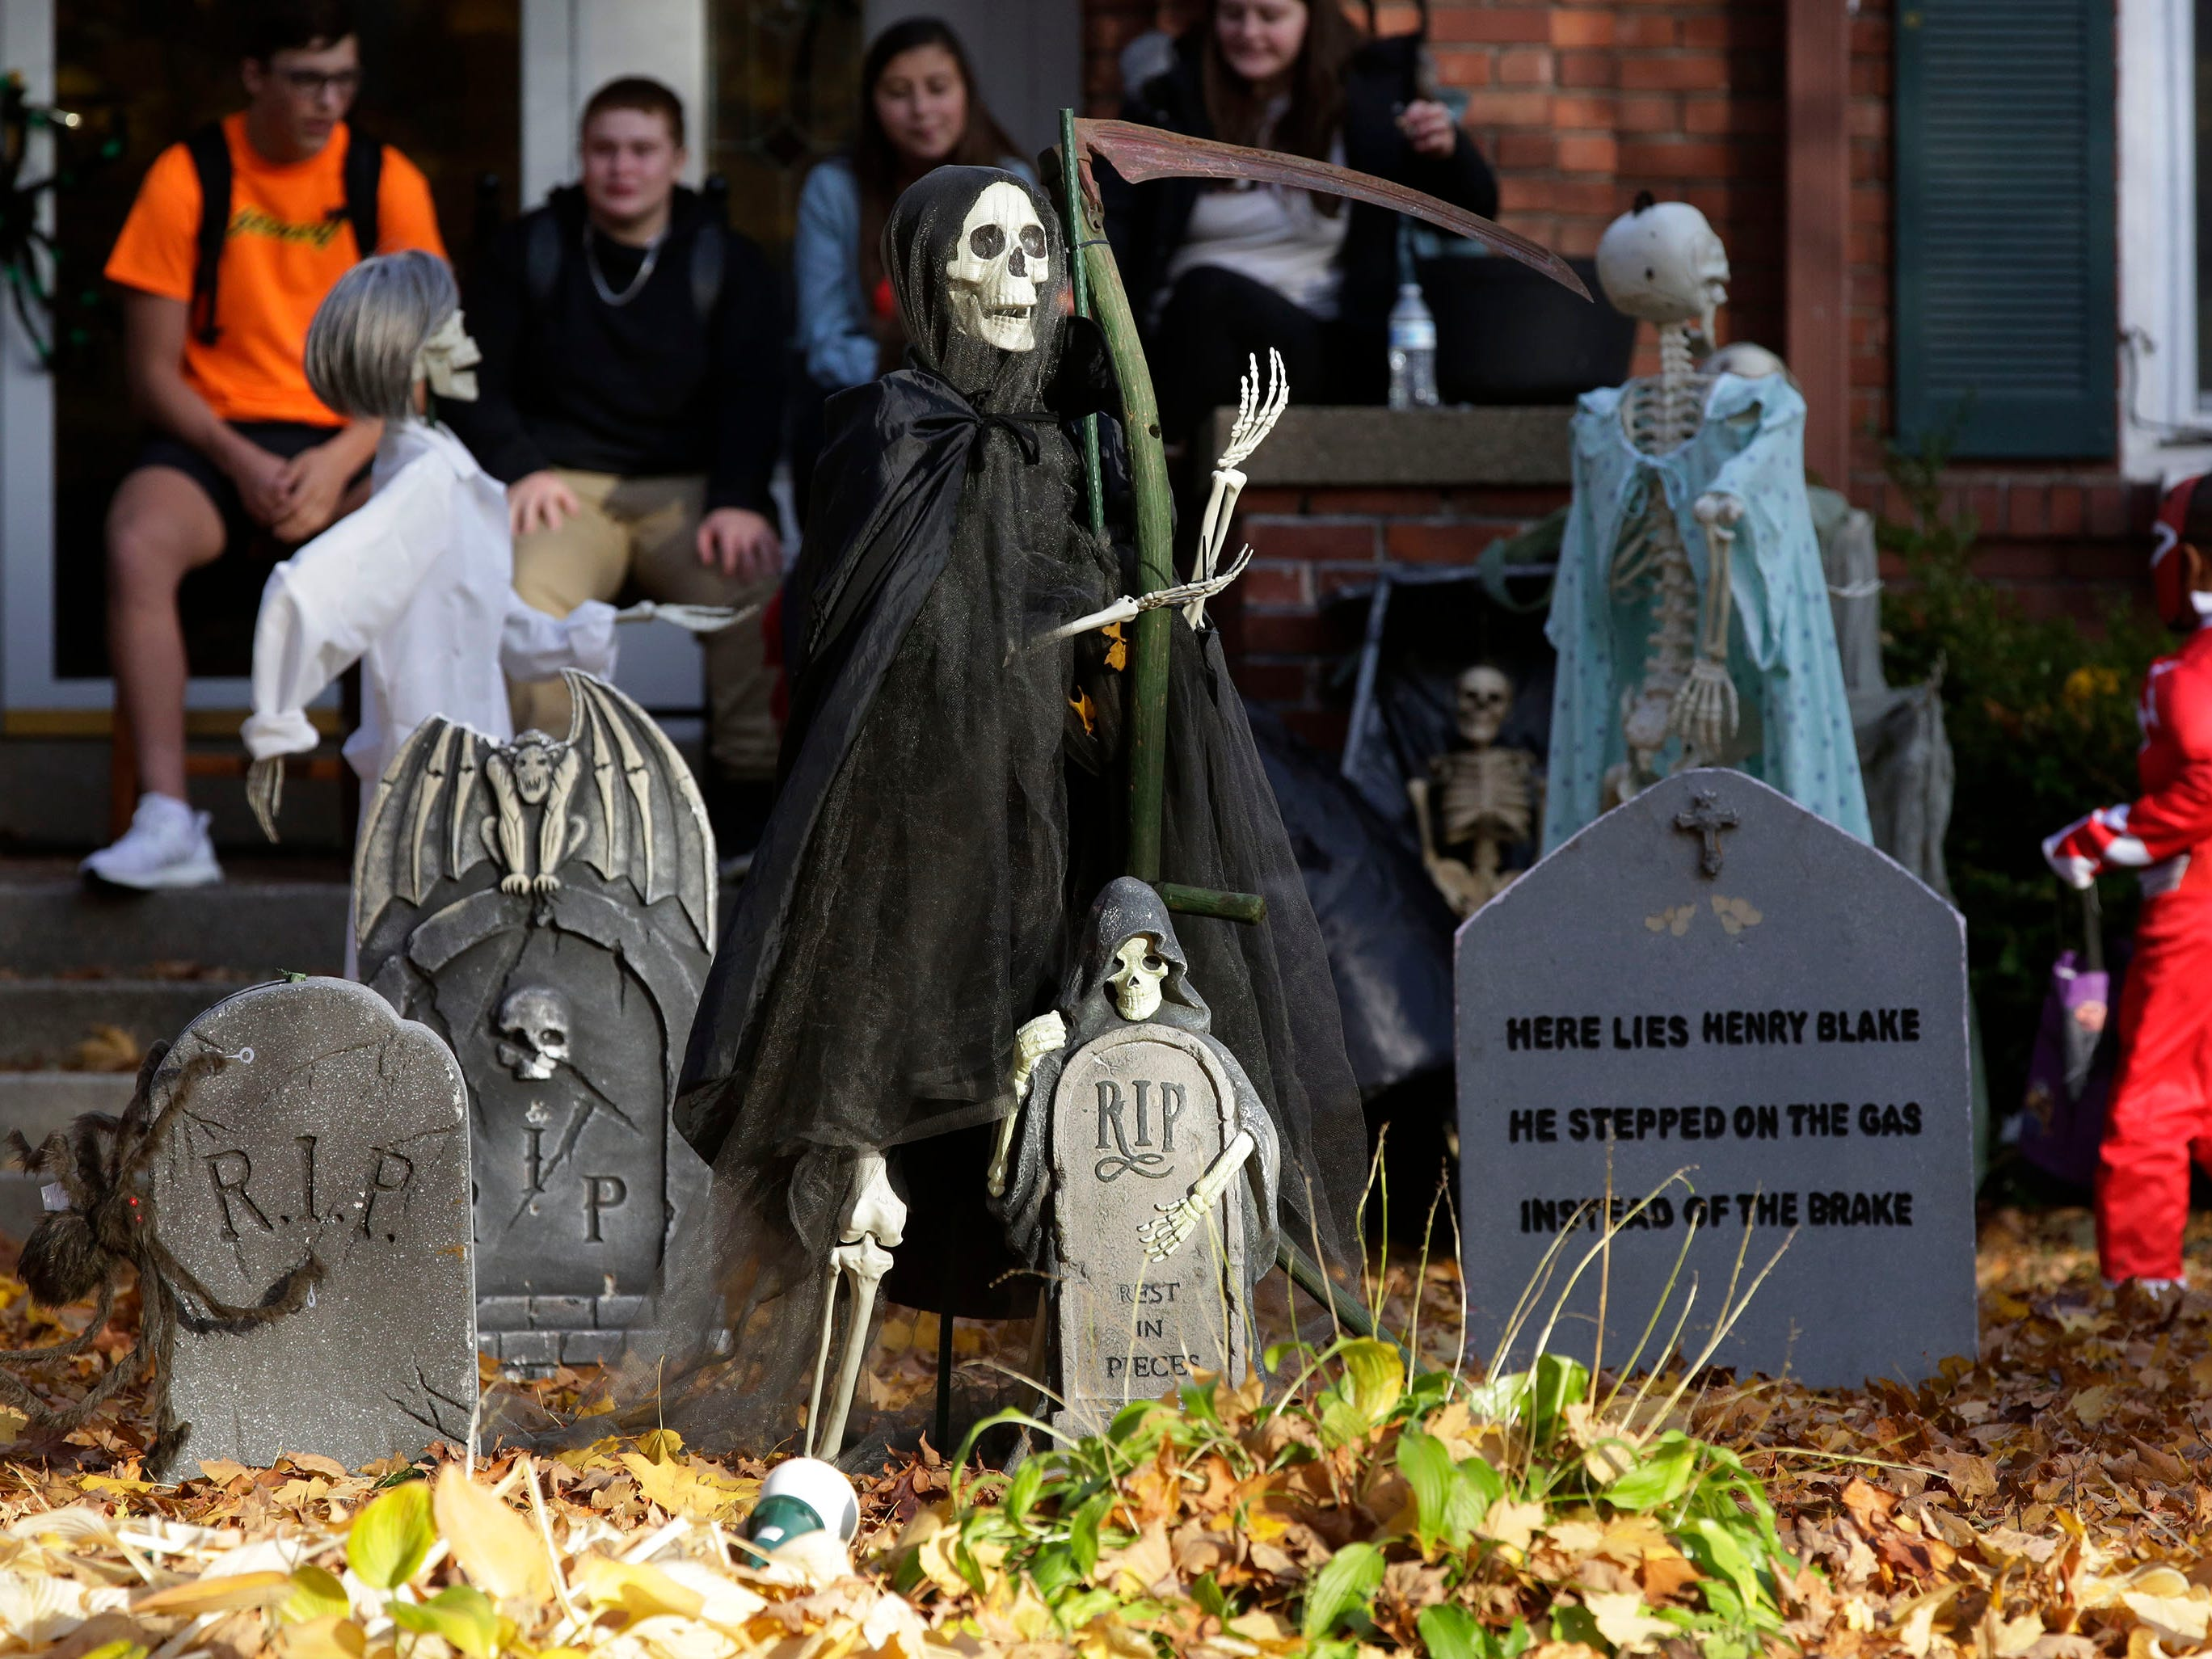 Scary tombstones and a skeleton are a feature of the front yard of Sarah Fritz during Trick or Treat, Wednesday, October 31, 2018, in Sheboygan, Wis.